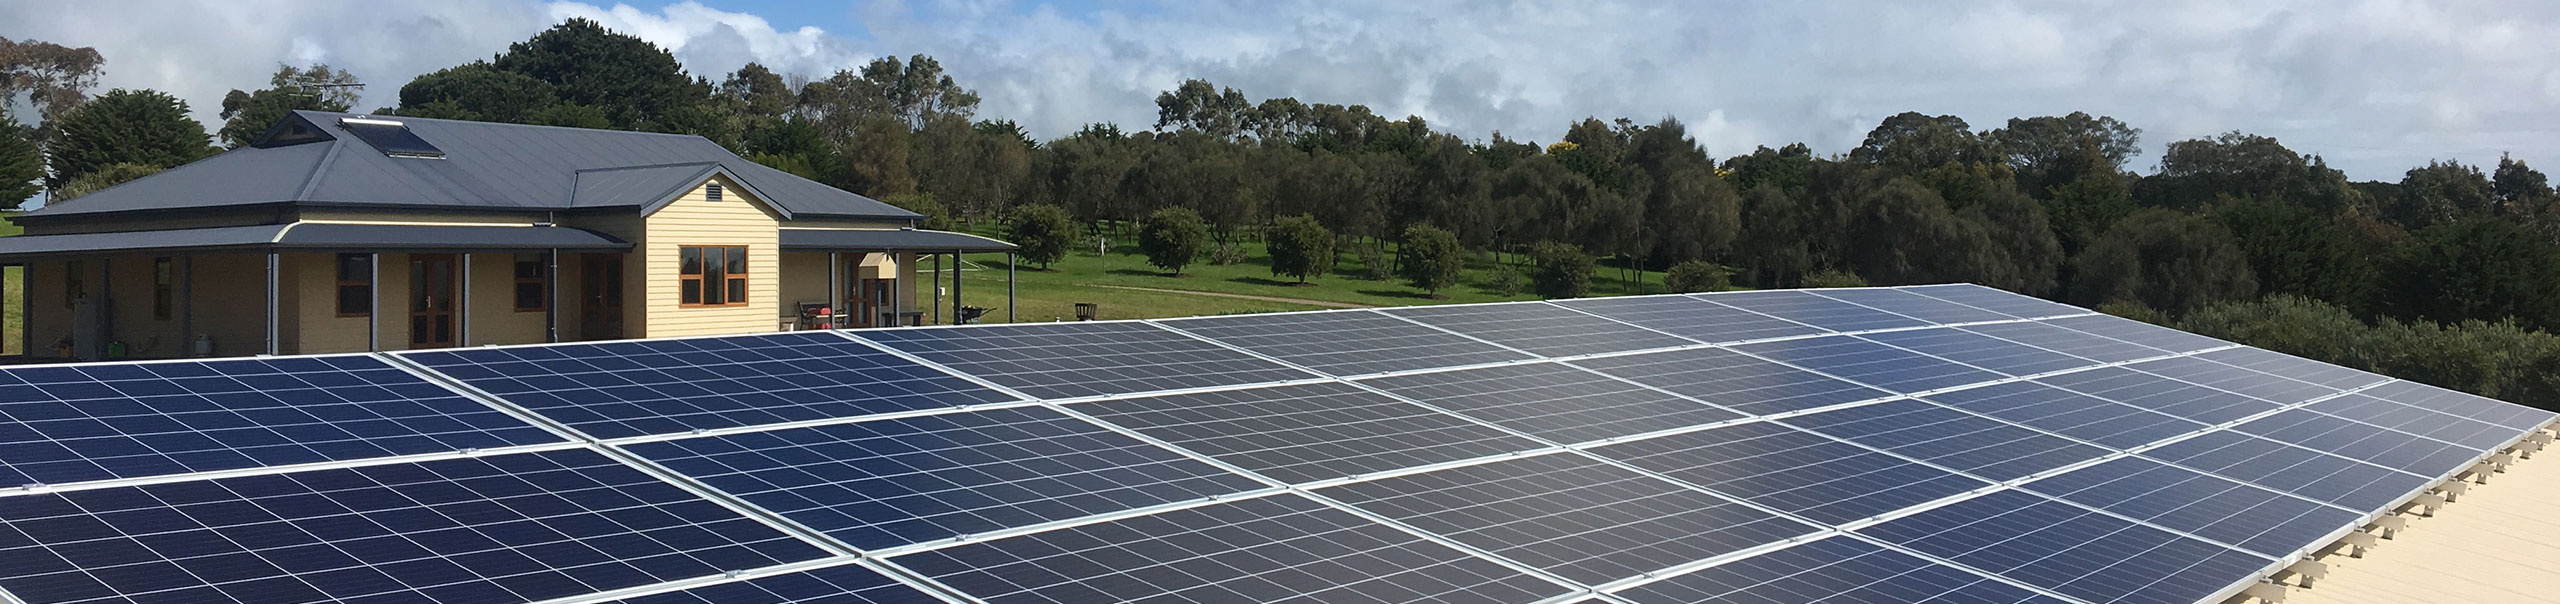 Adelaide Roofing & Solar - Character Roofing & First Choice Solar